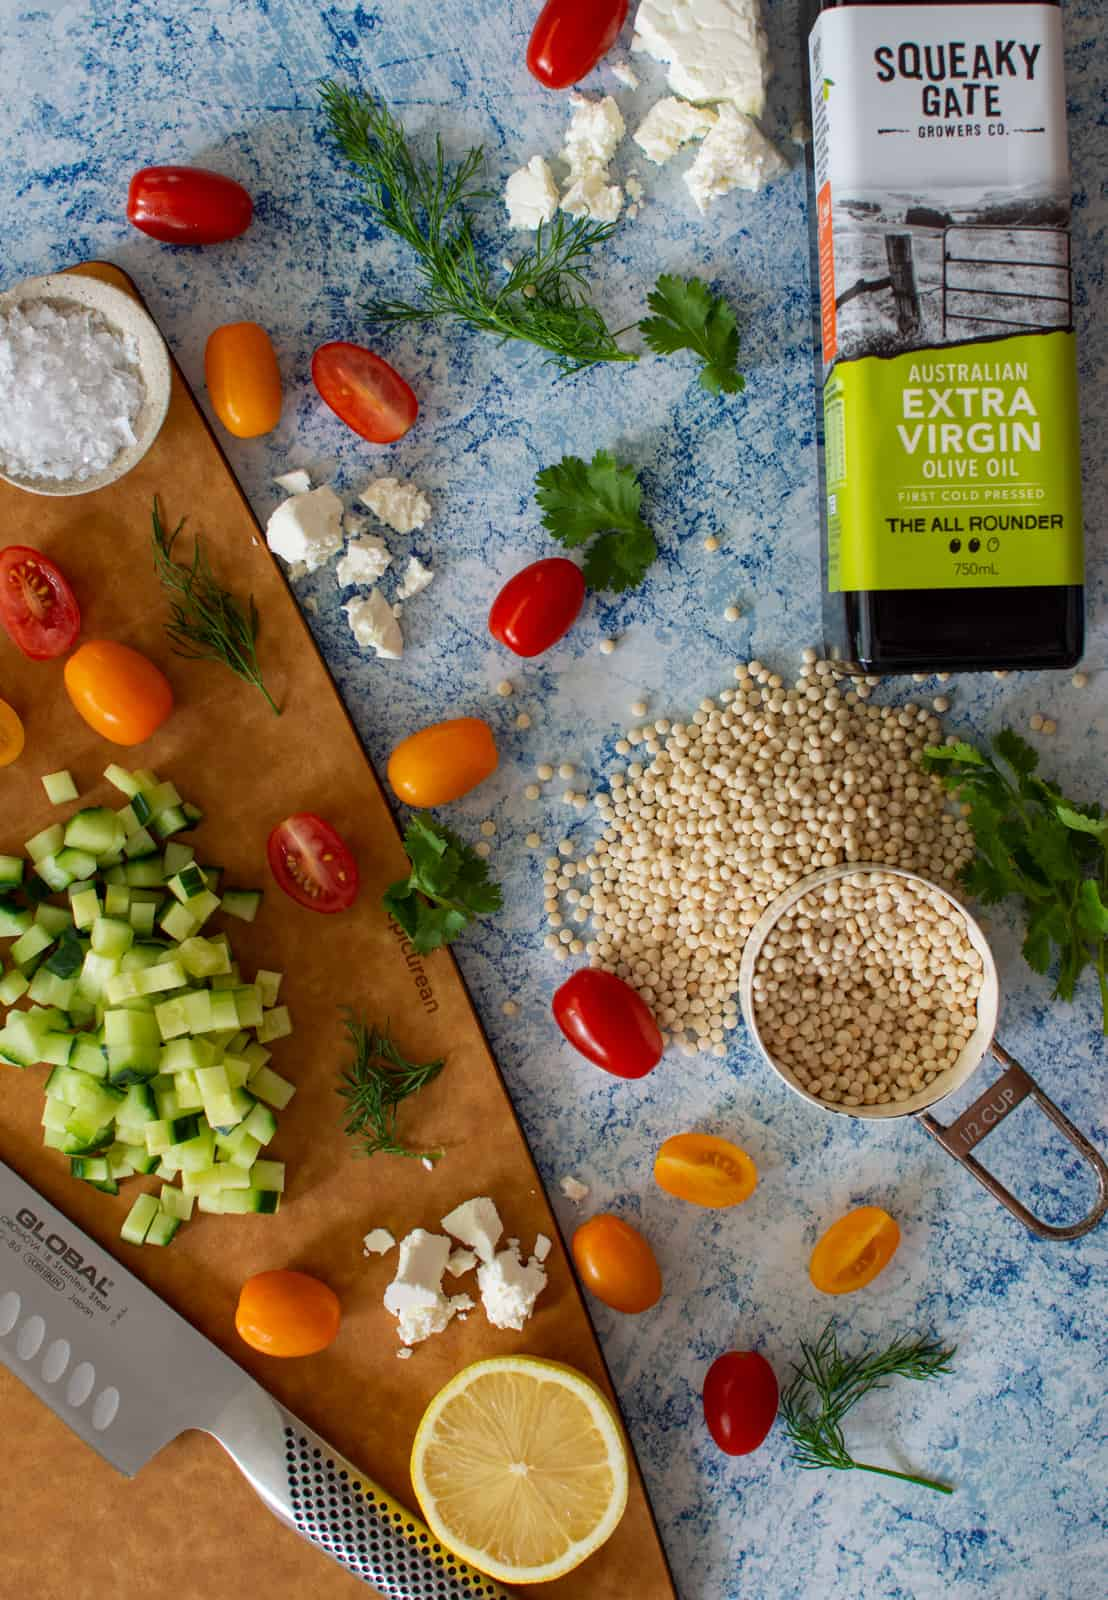 squeak gate olive oil, pearl cous cous and vegetables on a chopping board